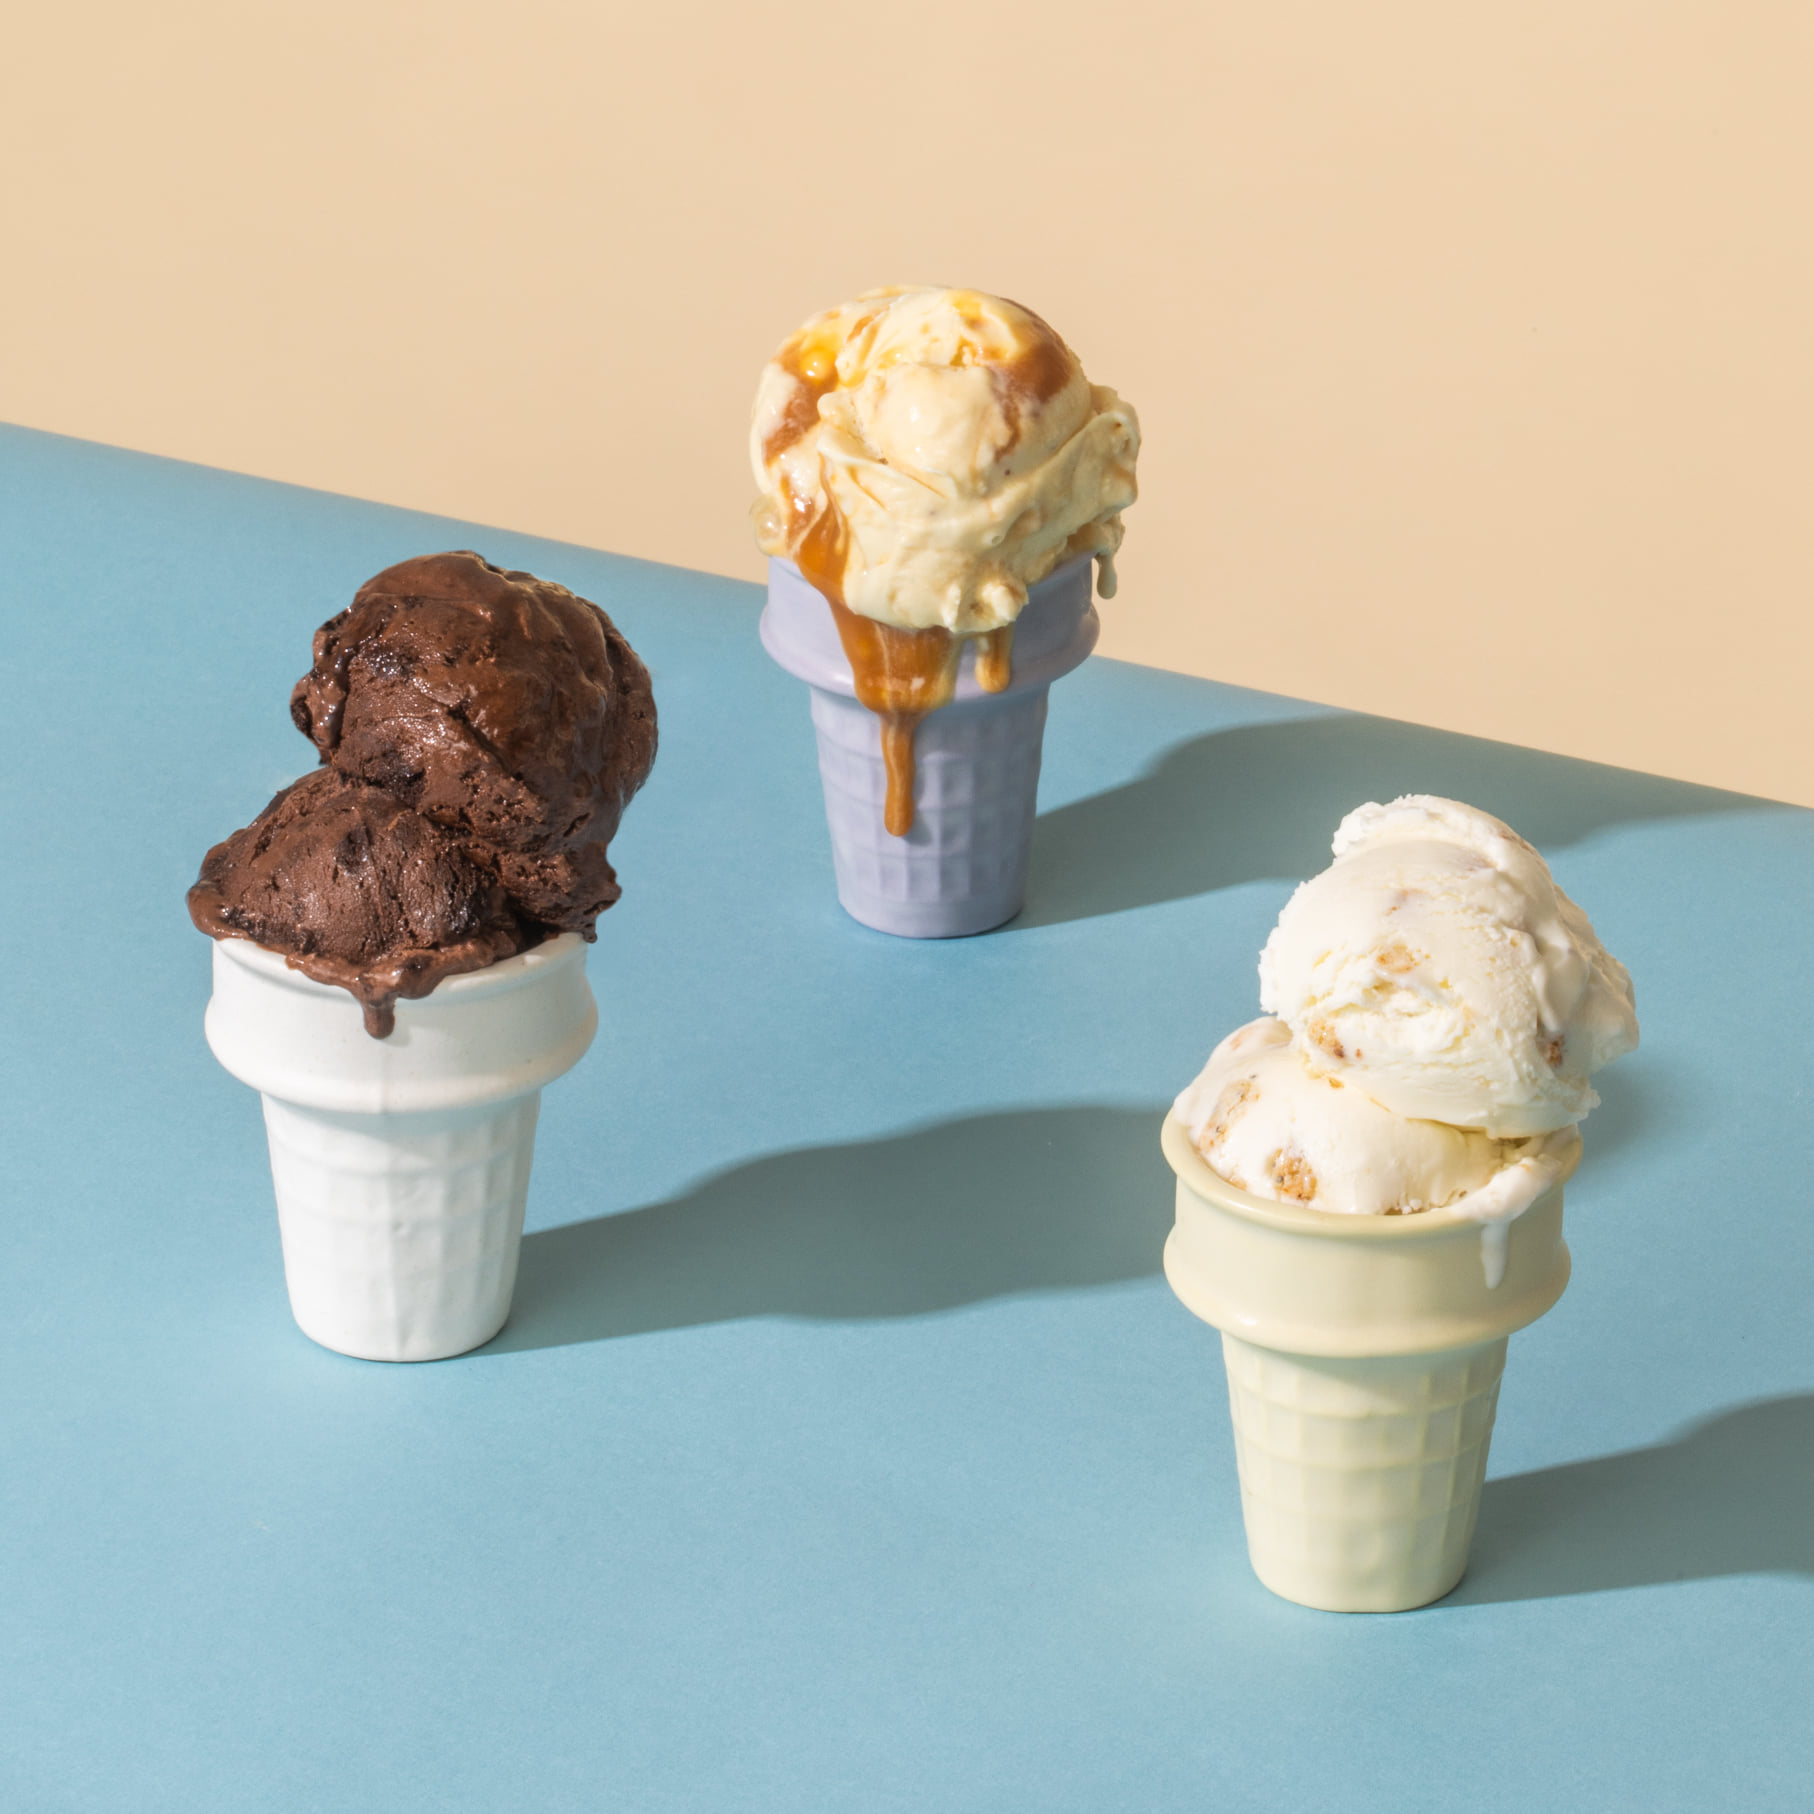 Three cake ice cream cones on a blue table (chocolate, caramel, and everything bagle ice cream)